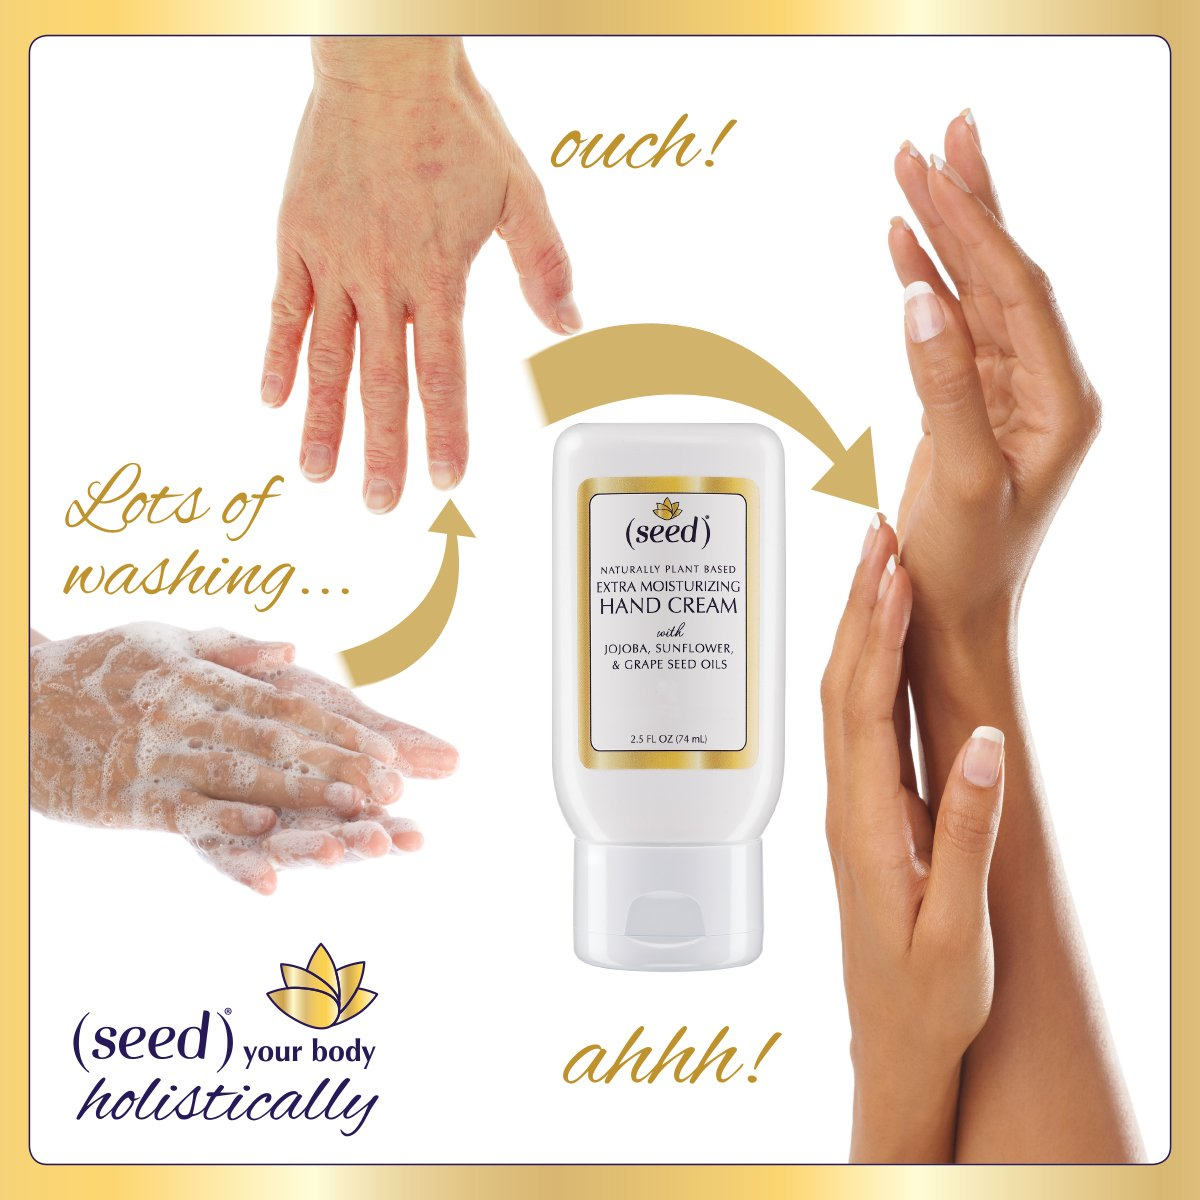 Seed Hand Cream soothes and softens frequently washed hands